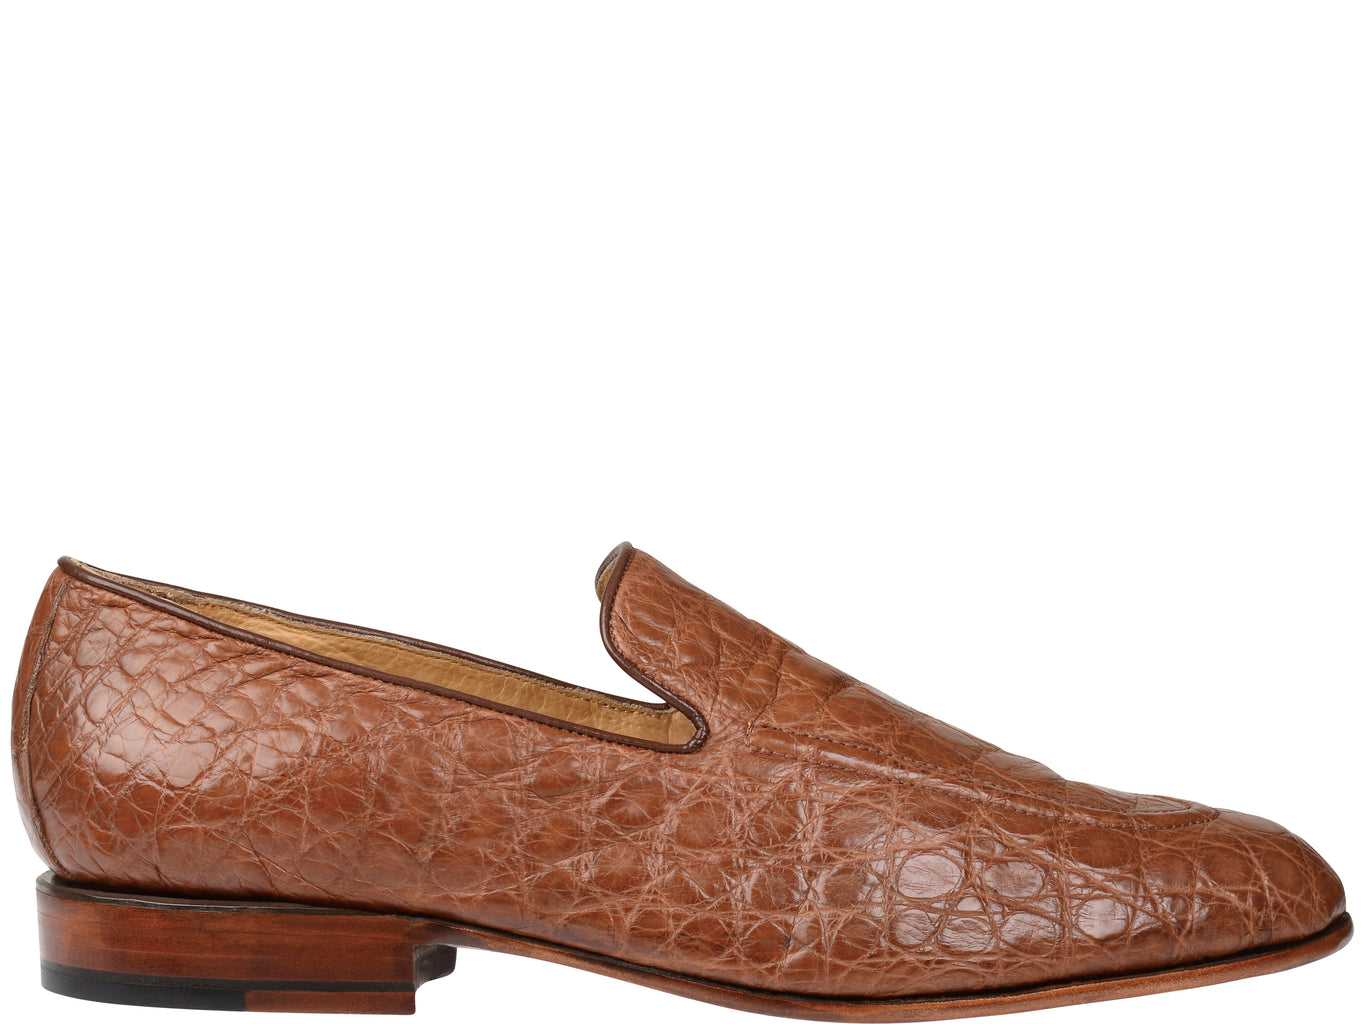 Men's Lucchese Bootmaker Reed Loafer #GY8013 view 3